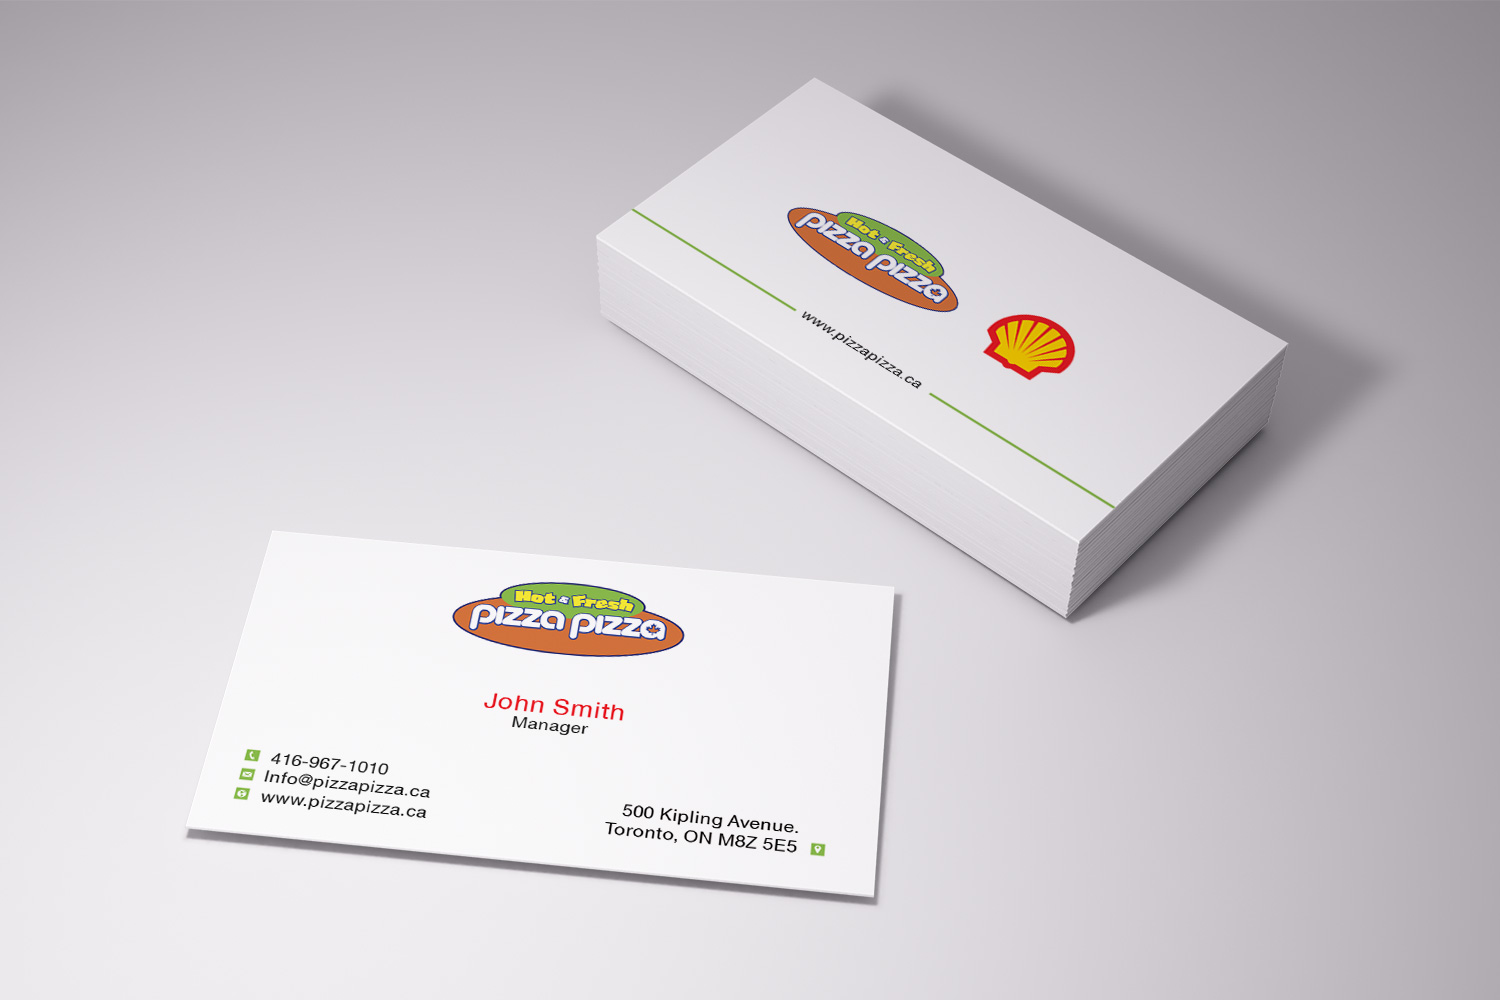 Serious modern restaurant business card design for shell gas business card design by pawana designs for shell gas station design 14067555 colourmoves